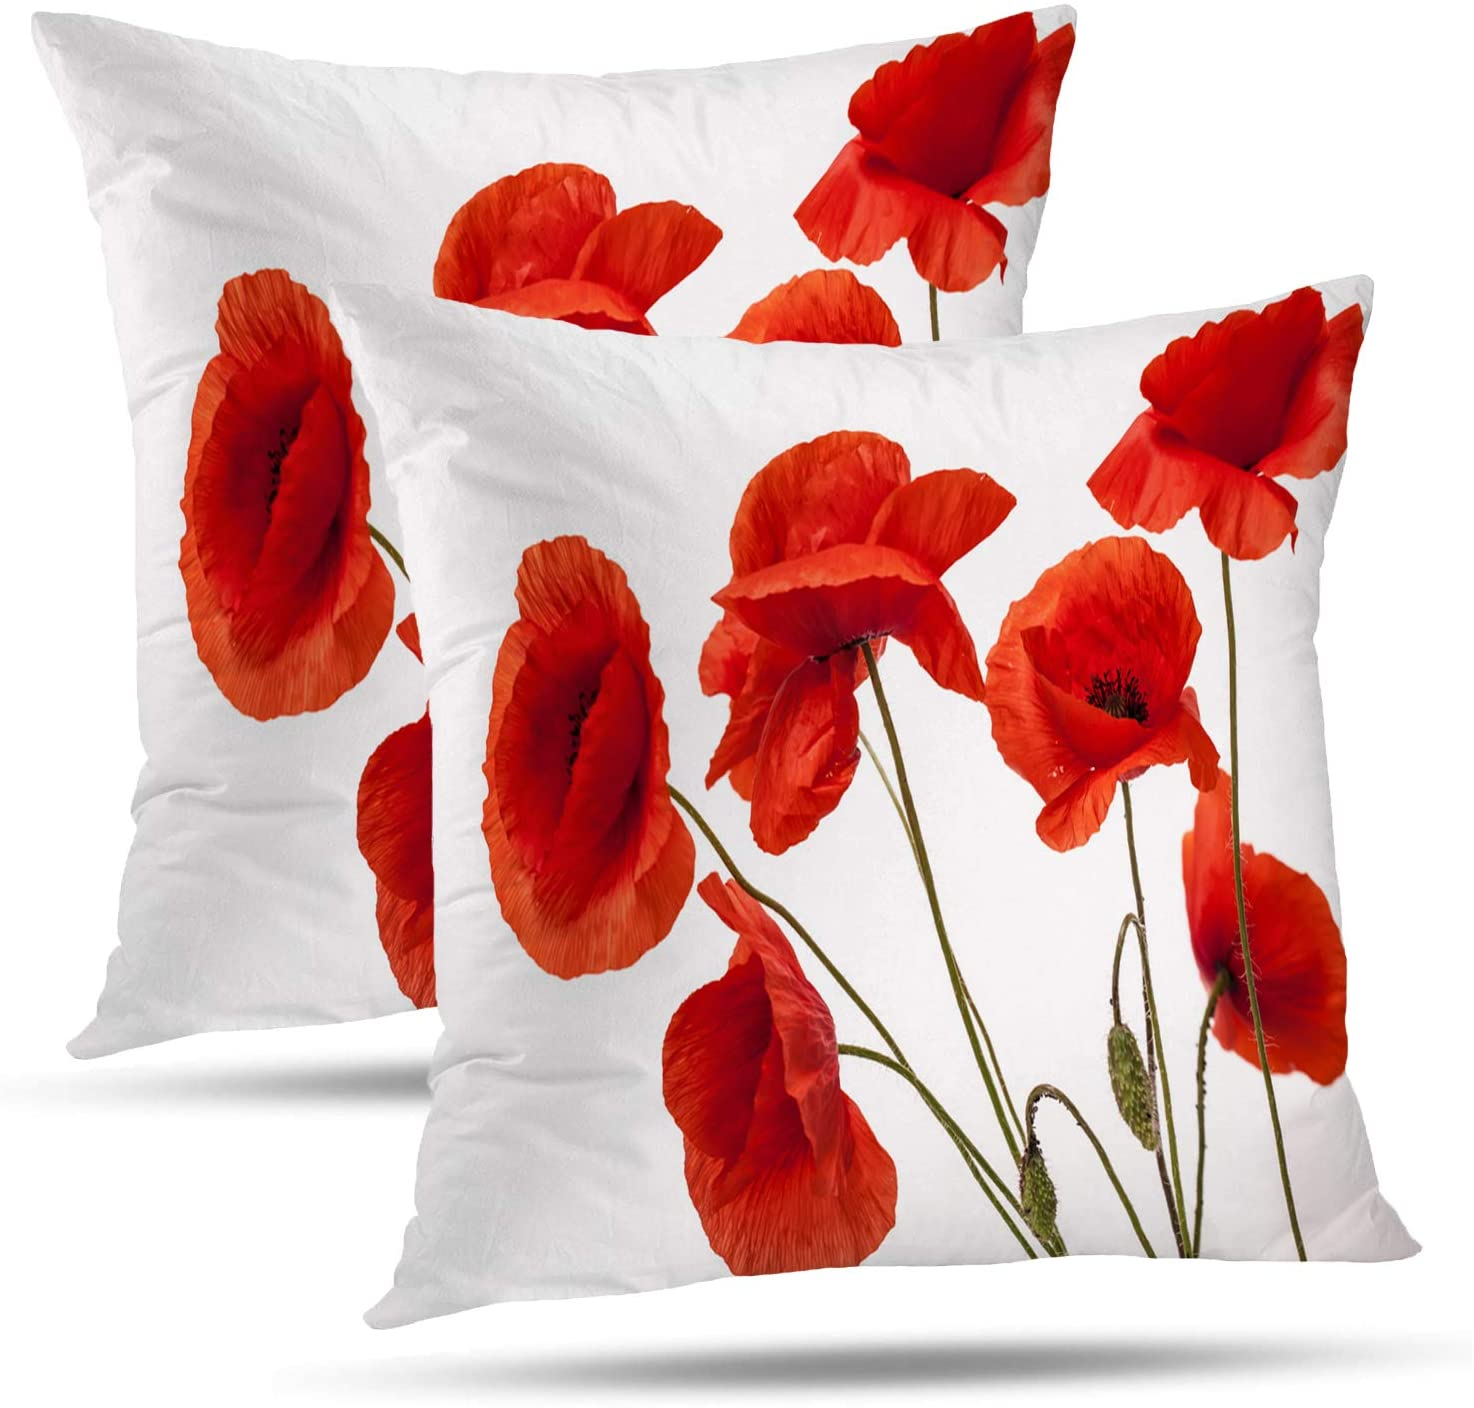 Batmerry Spring Pillows Decorative Throw Pillow Covers 18x18 Inch Set of 2, Poppy Flowers White Poppy Red Beautiful White Beauty Bloom Blossom Double Sided Square Pillow Cases Pillowcase Sofa Cushion